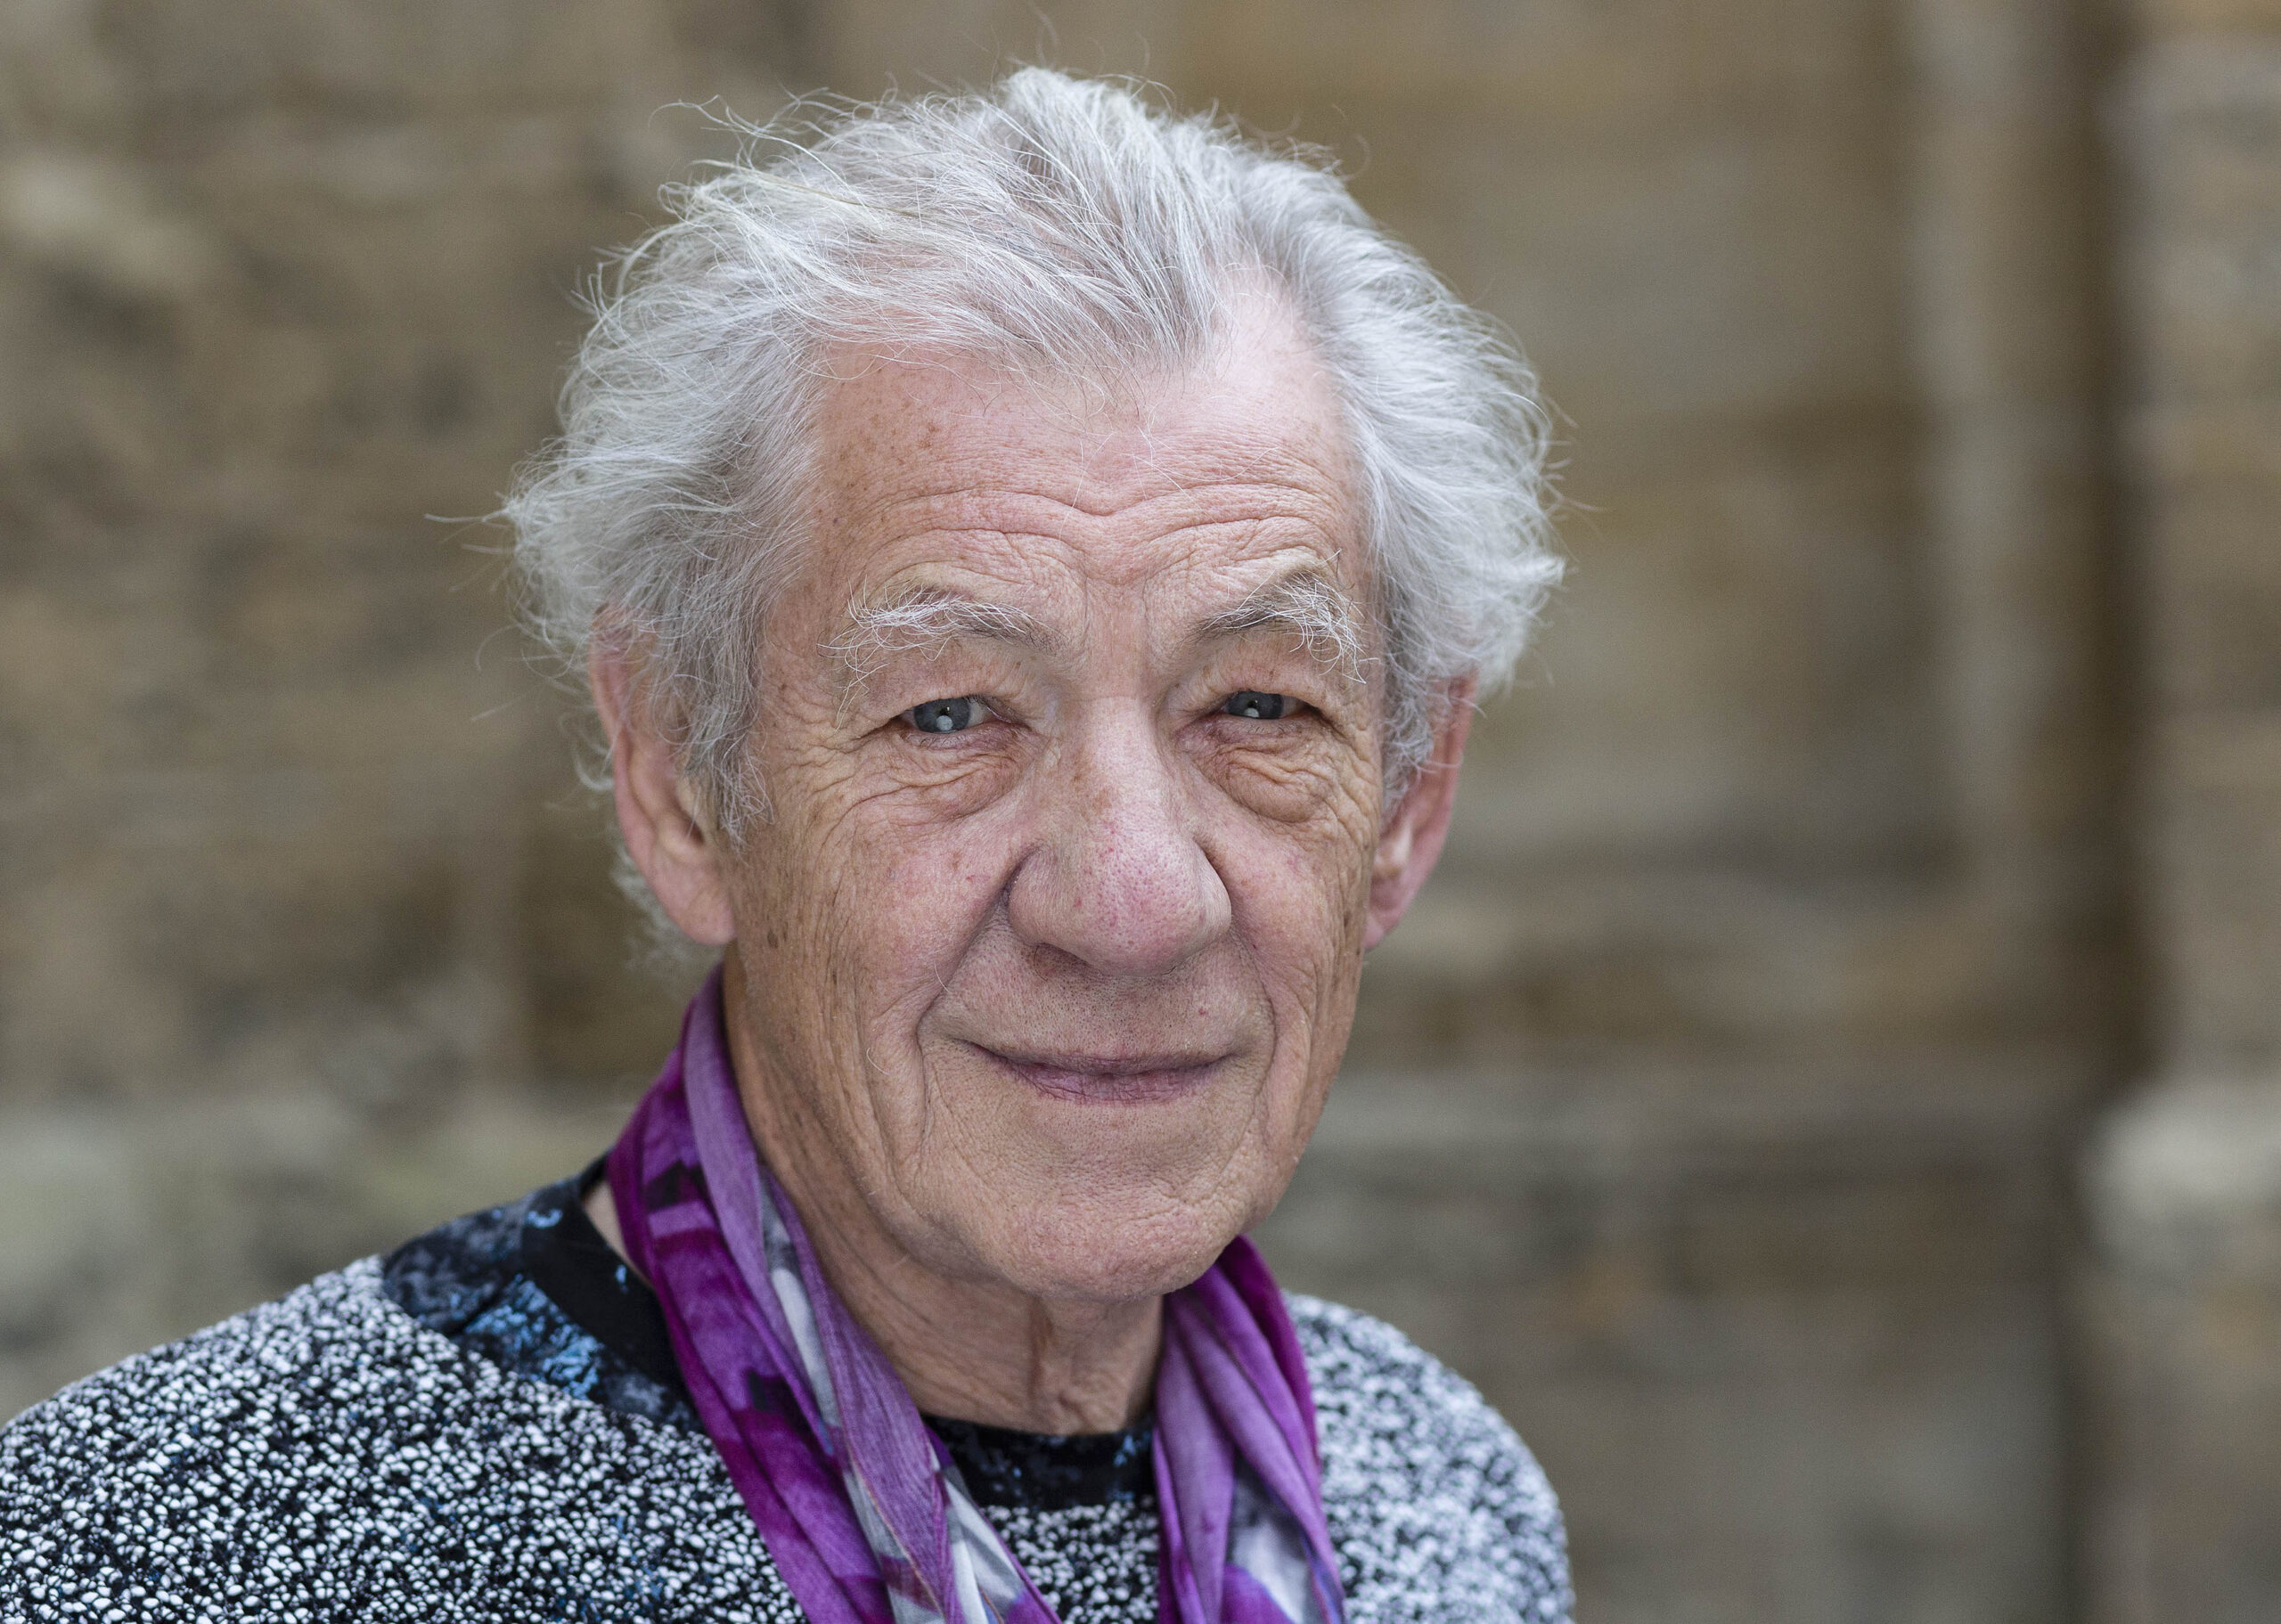 Sir-Ian-McKellen-Lord-of-the-Rings-star